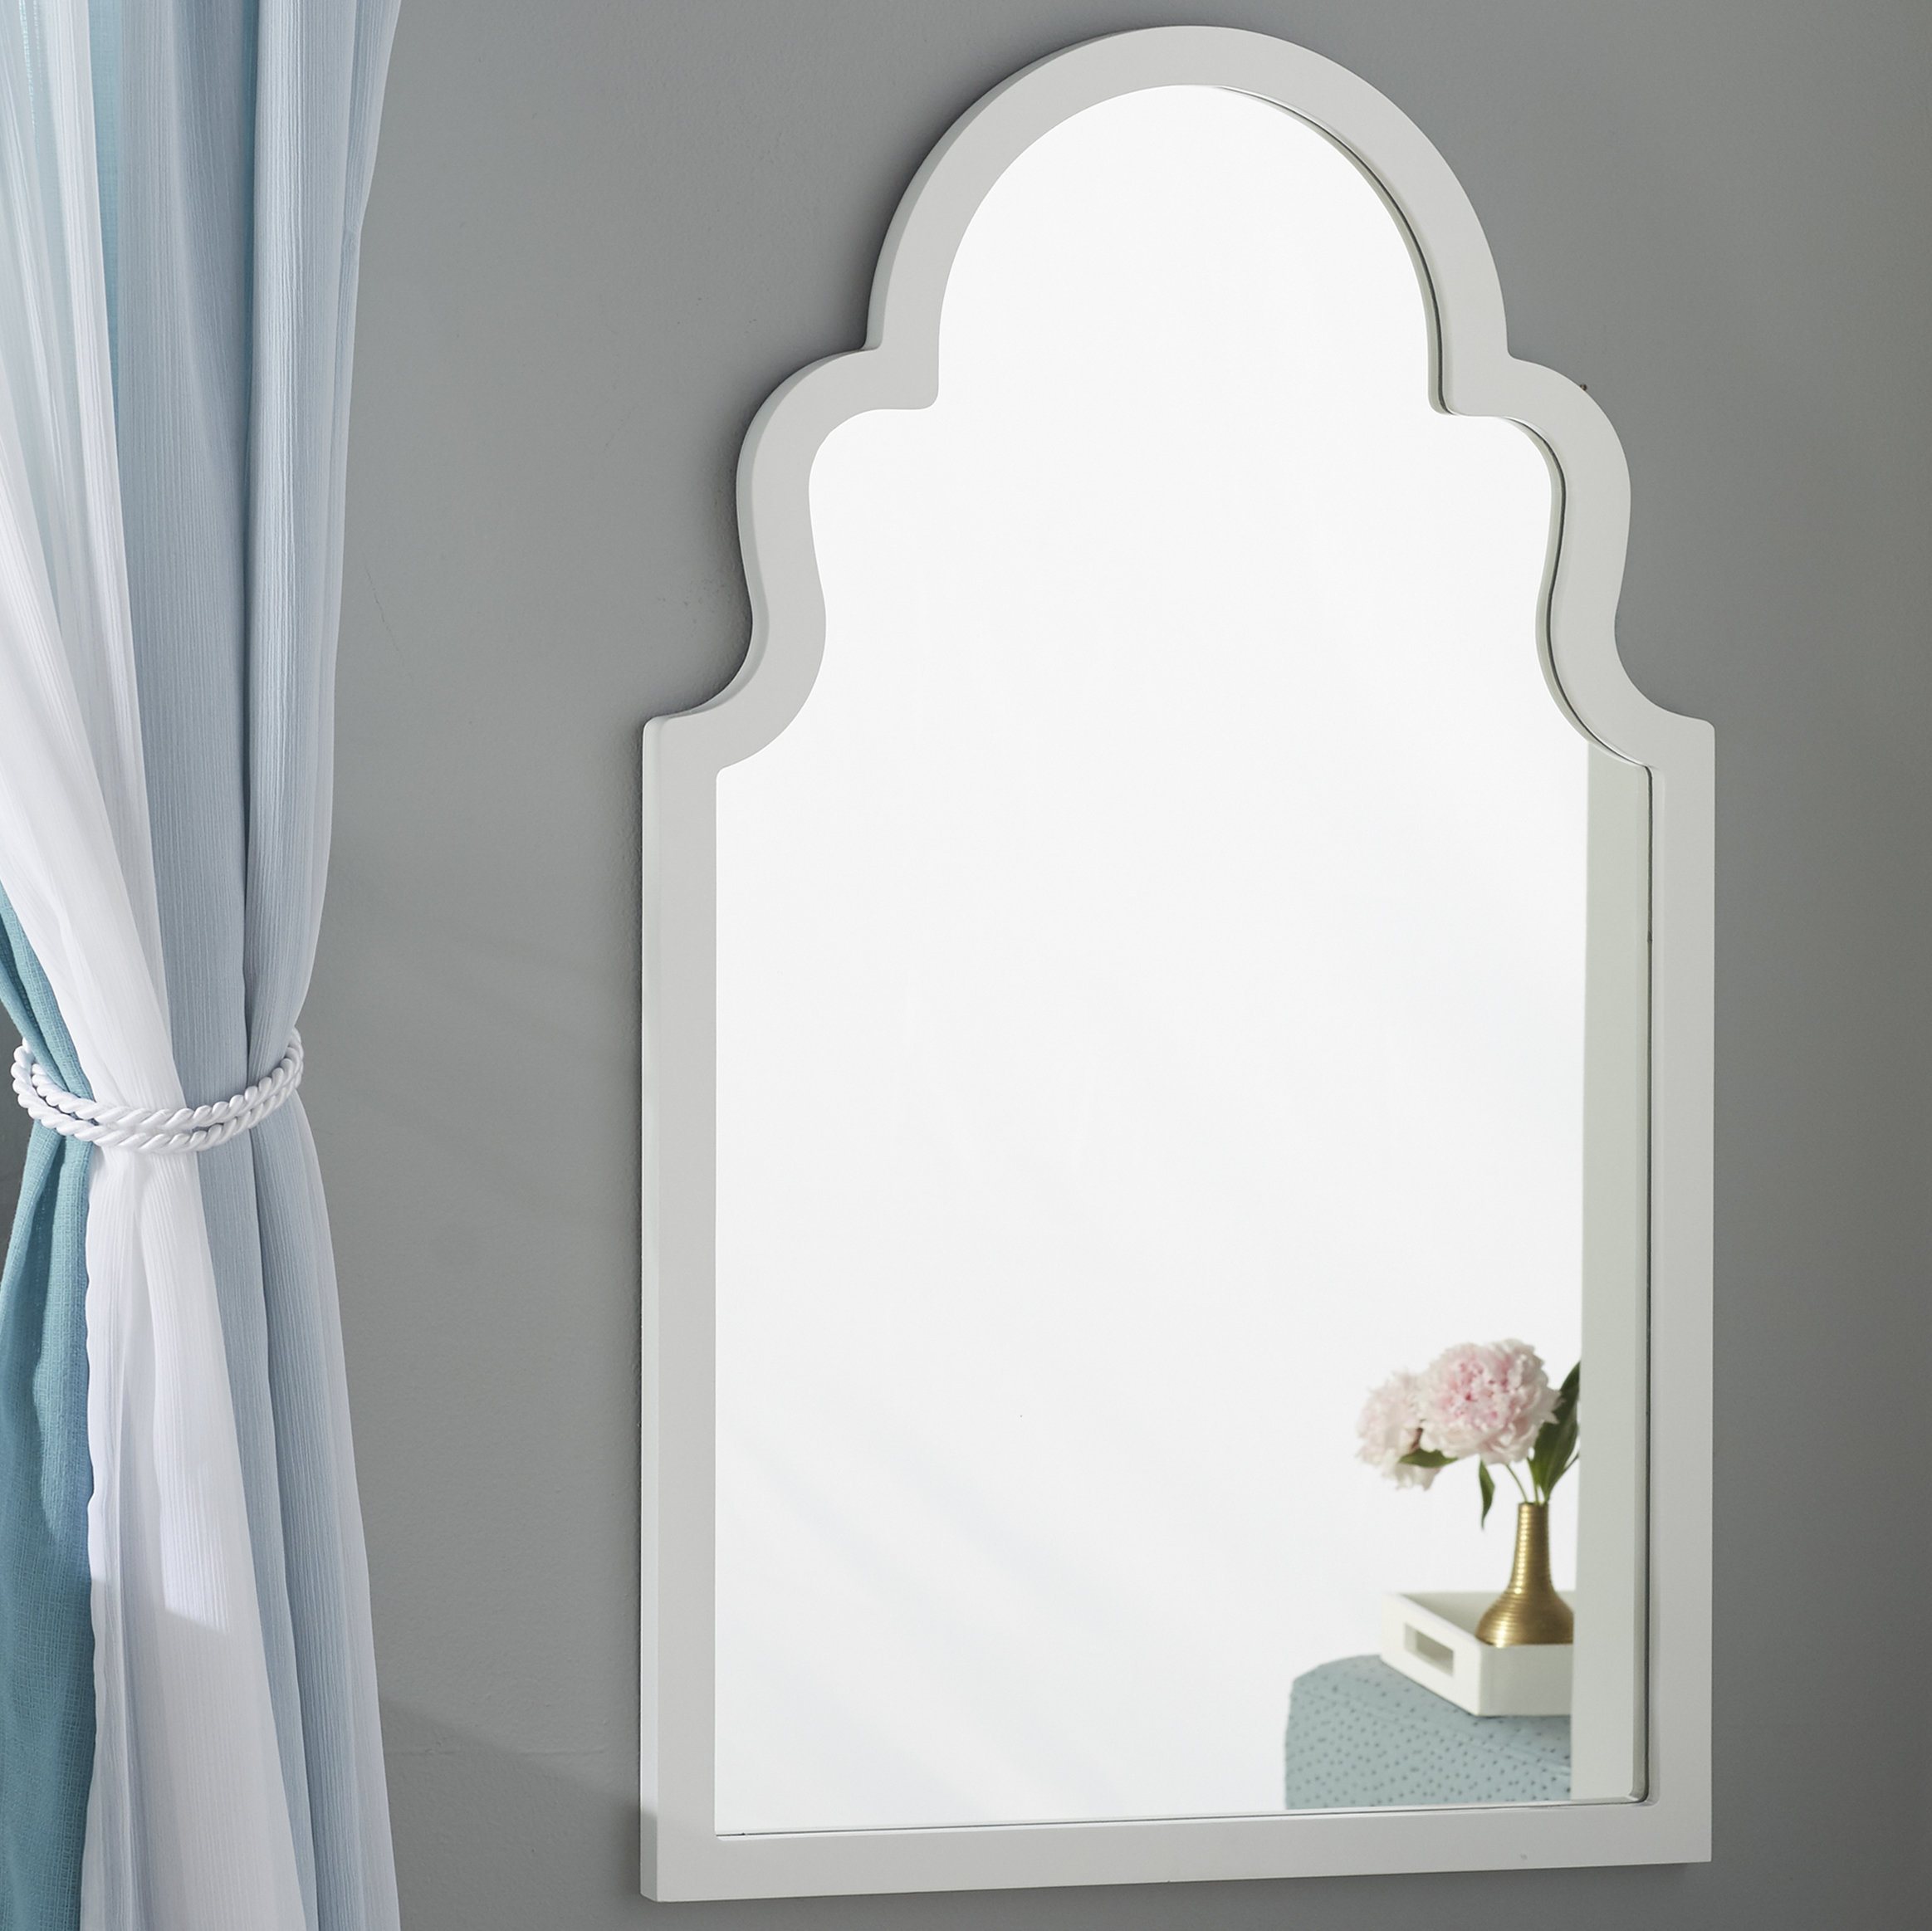 Arch Vertical Wall Mirror With Regard To Fifi Contemporary Arch Wall Mirrors (View 7 of 30)